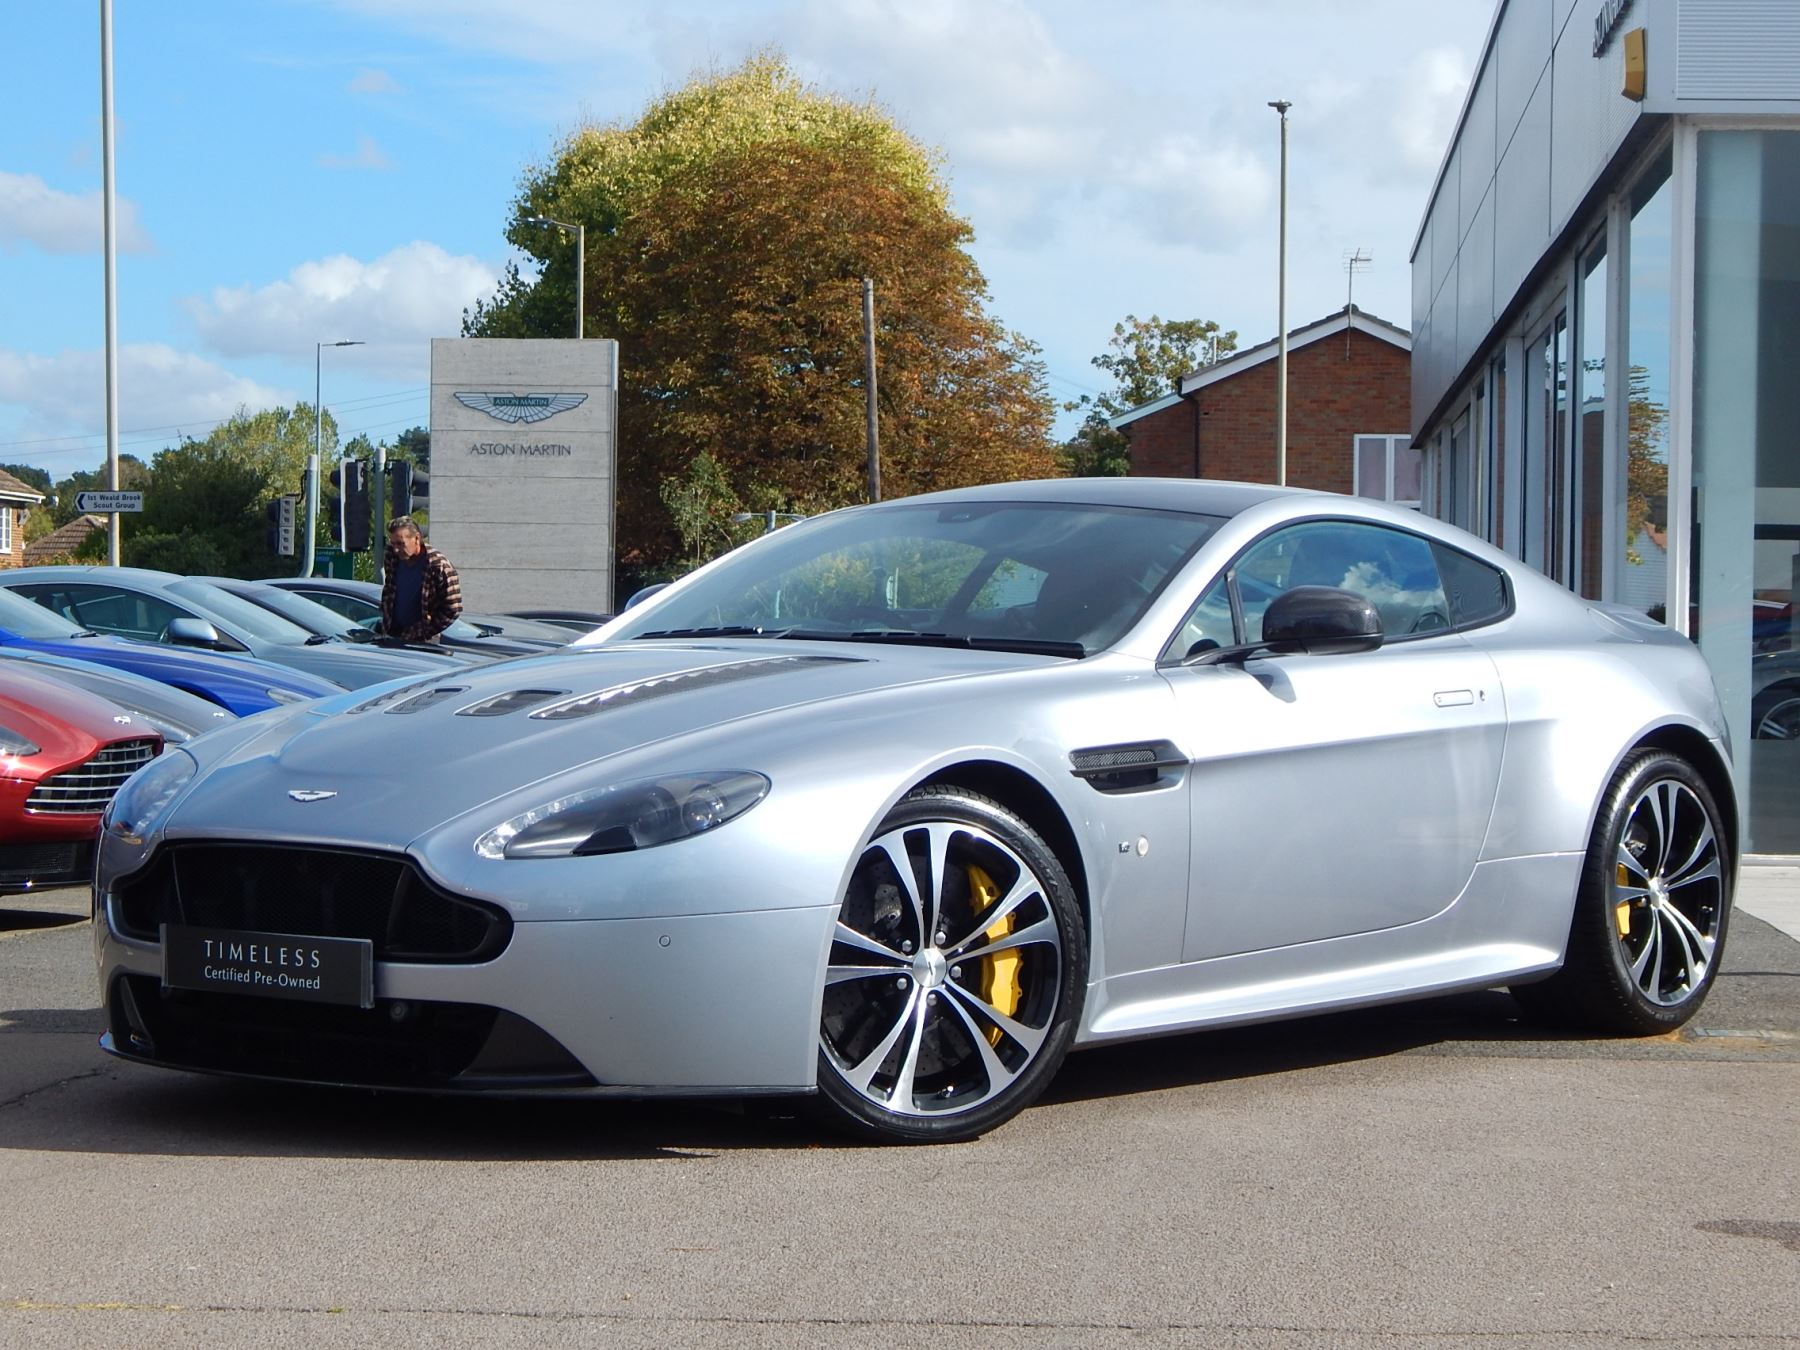 Used Aston Martin Brentwood Cars for Sale